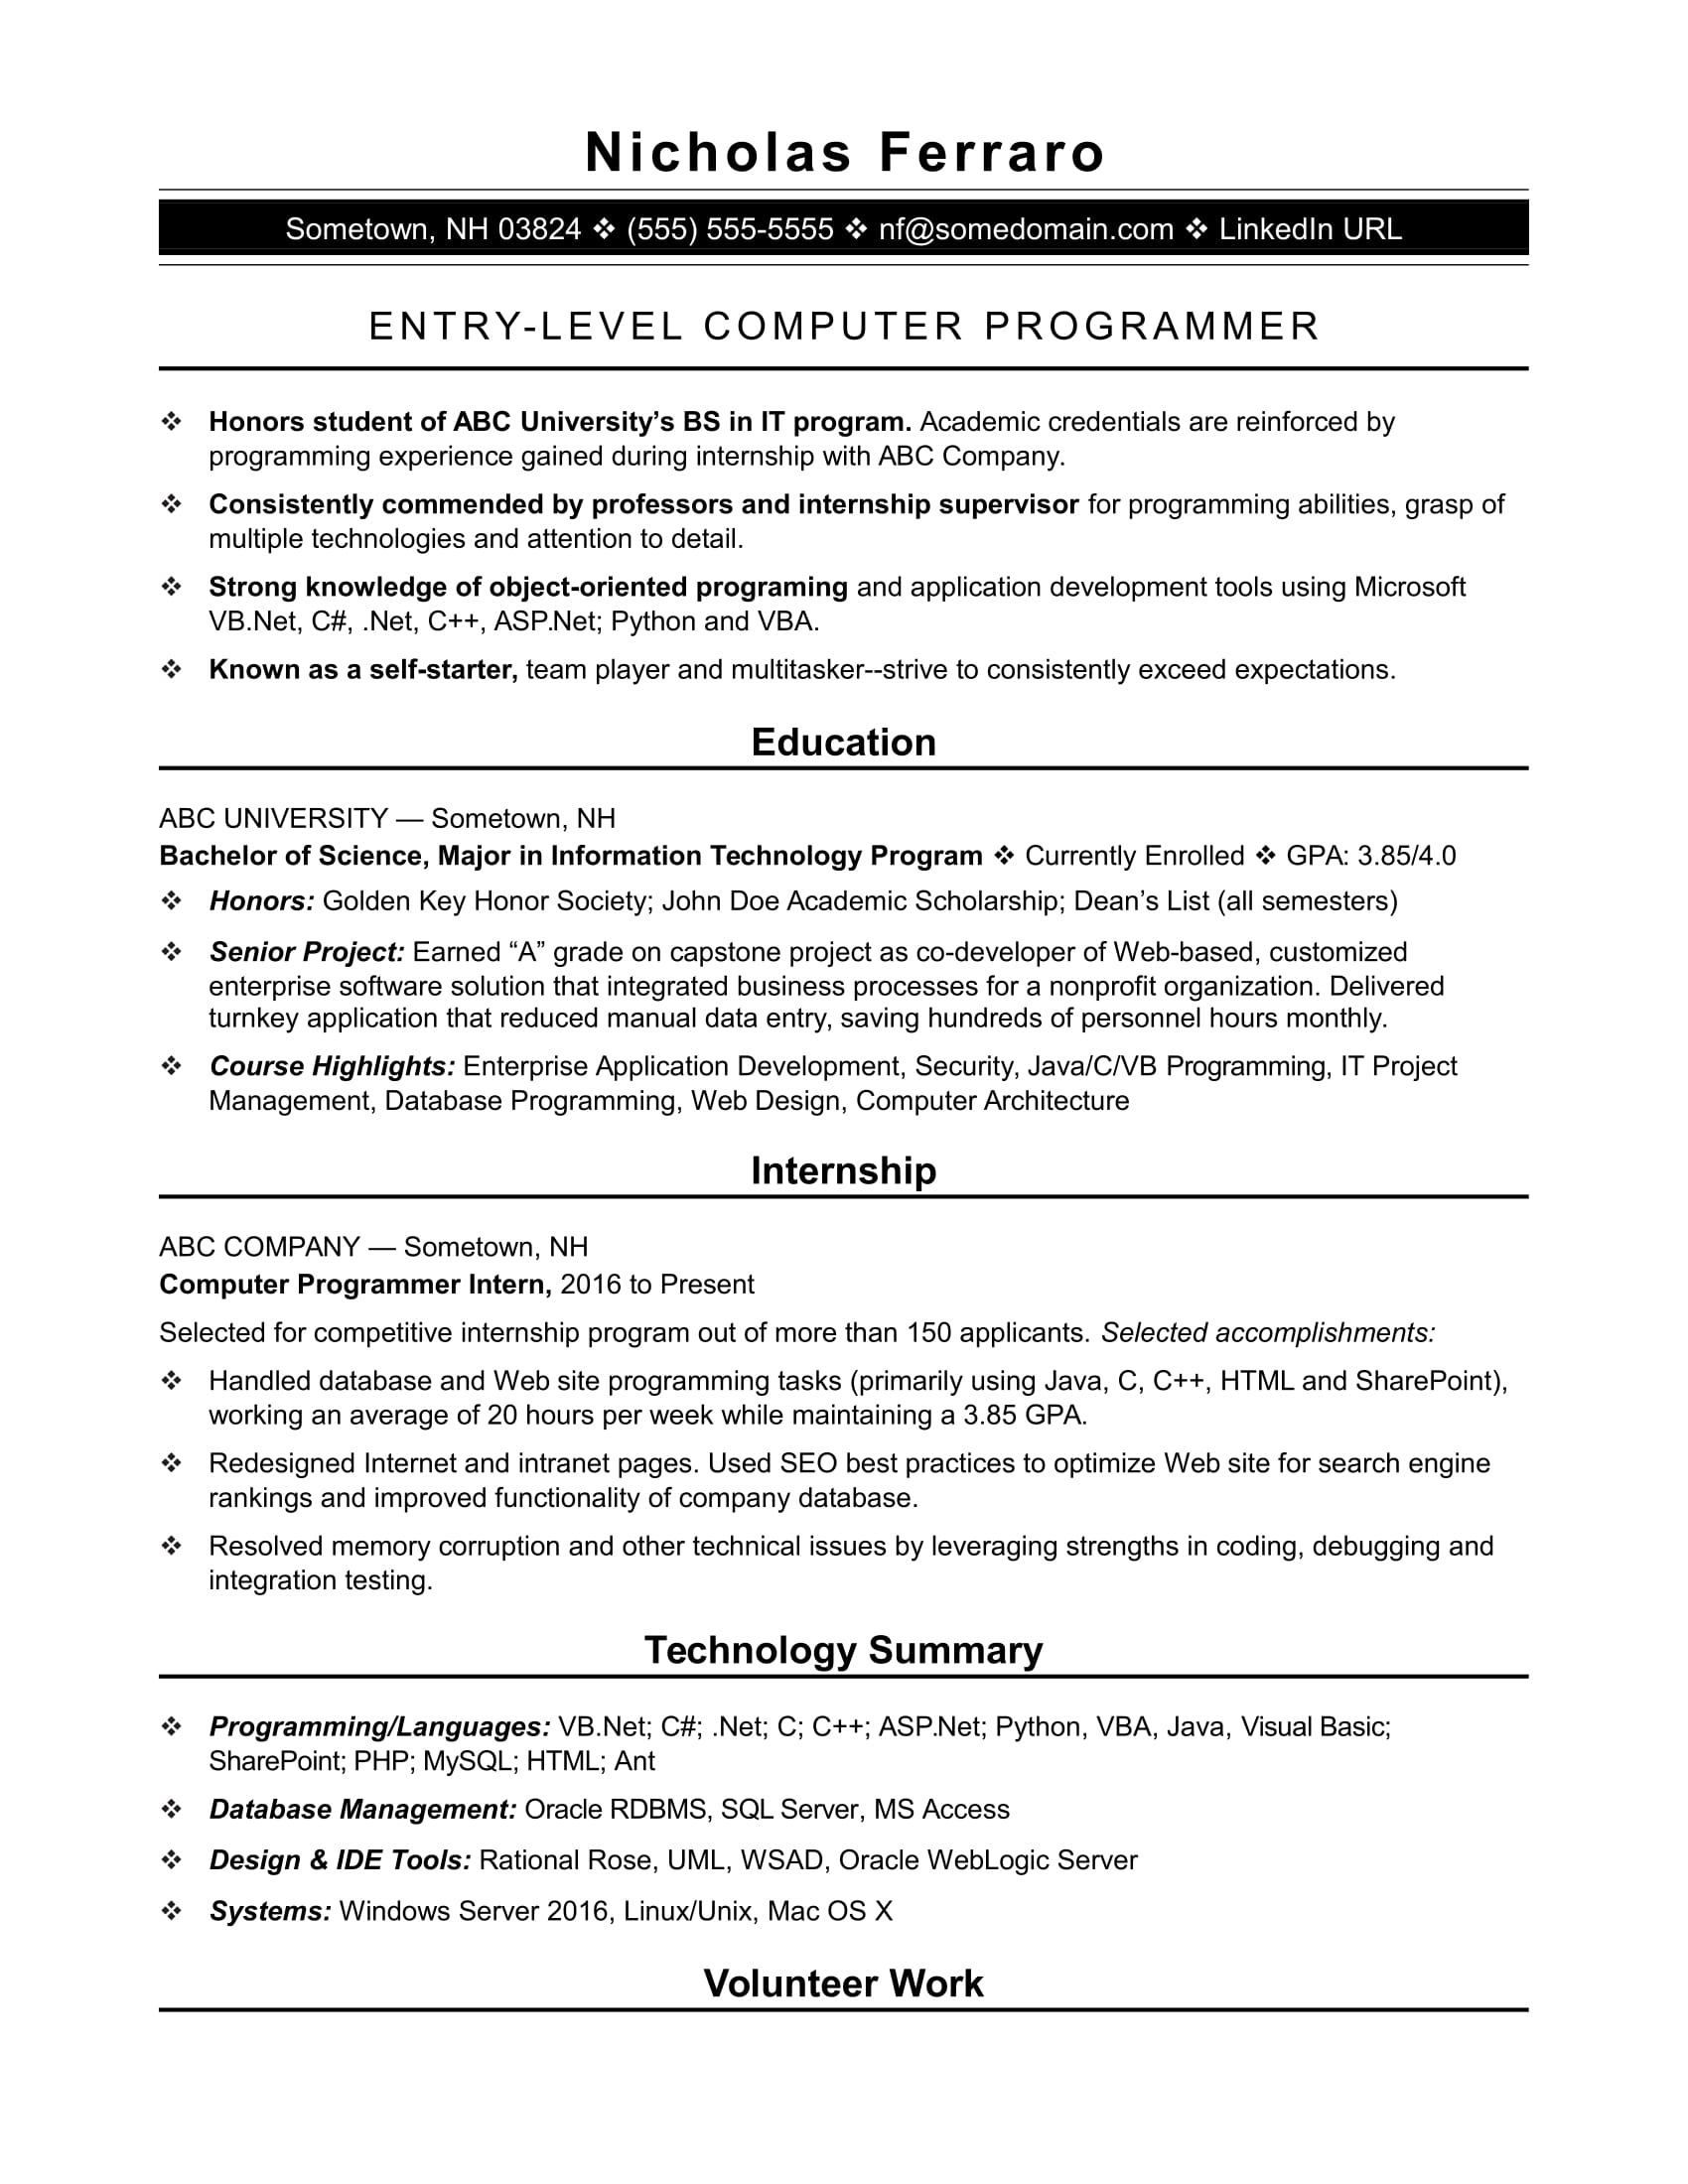 sample resume for an entry level computer programmer - Computer Science Resume Sample